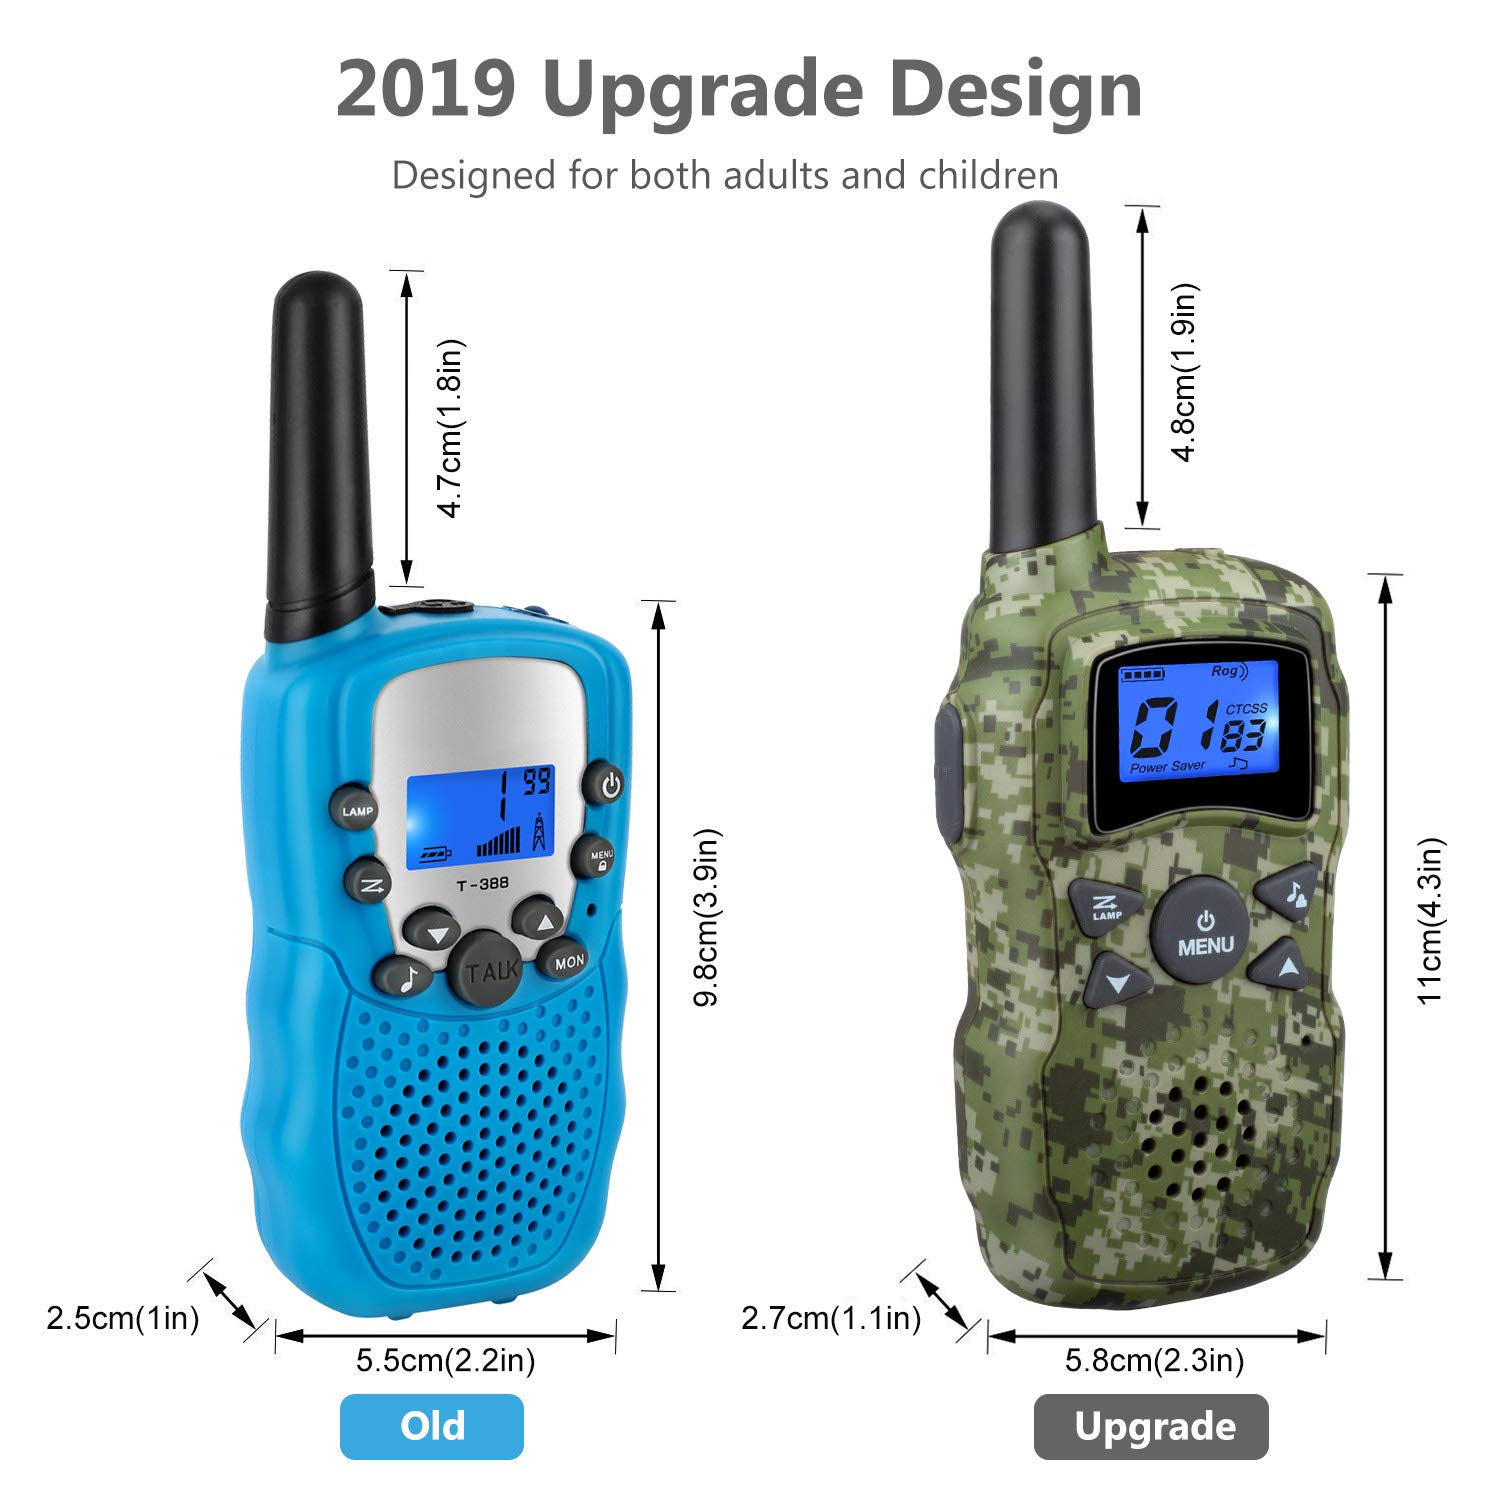 Wishouse 3 Walkie Talkies for Kids Rechargeable with Charger Battery,Family Two Way Radio Talkabout Walky Talky for Adults Long Range, Outdoor Fun Toy Birthday Gift for Girls Boys Teen Toddlers - Camo by Wishouse (Image #3)